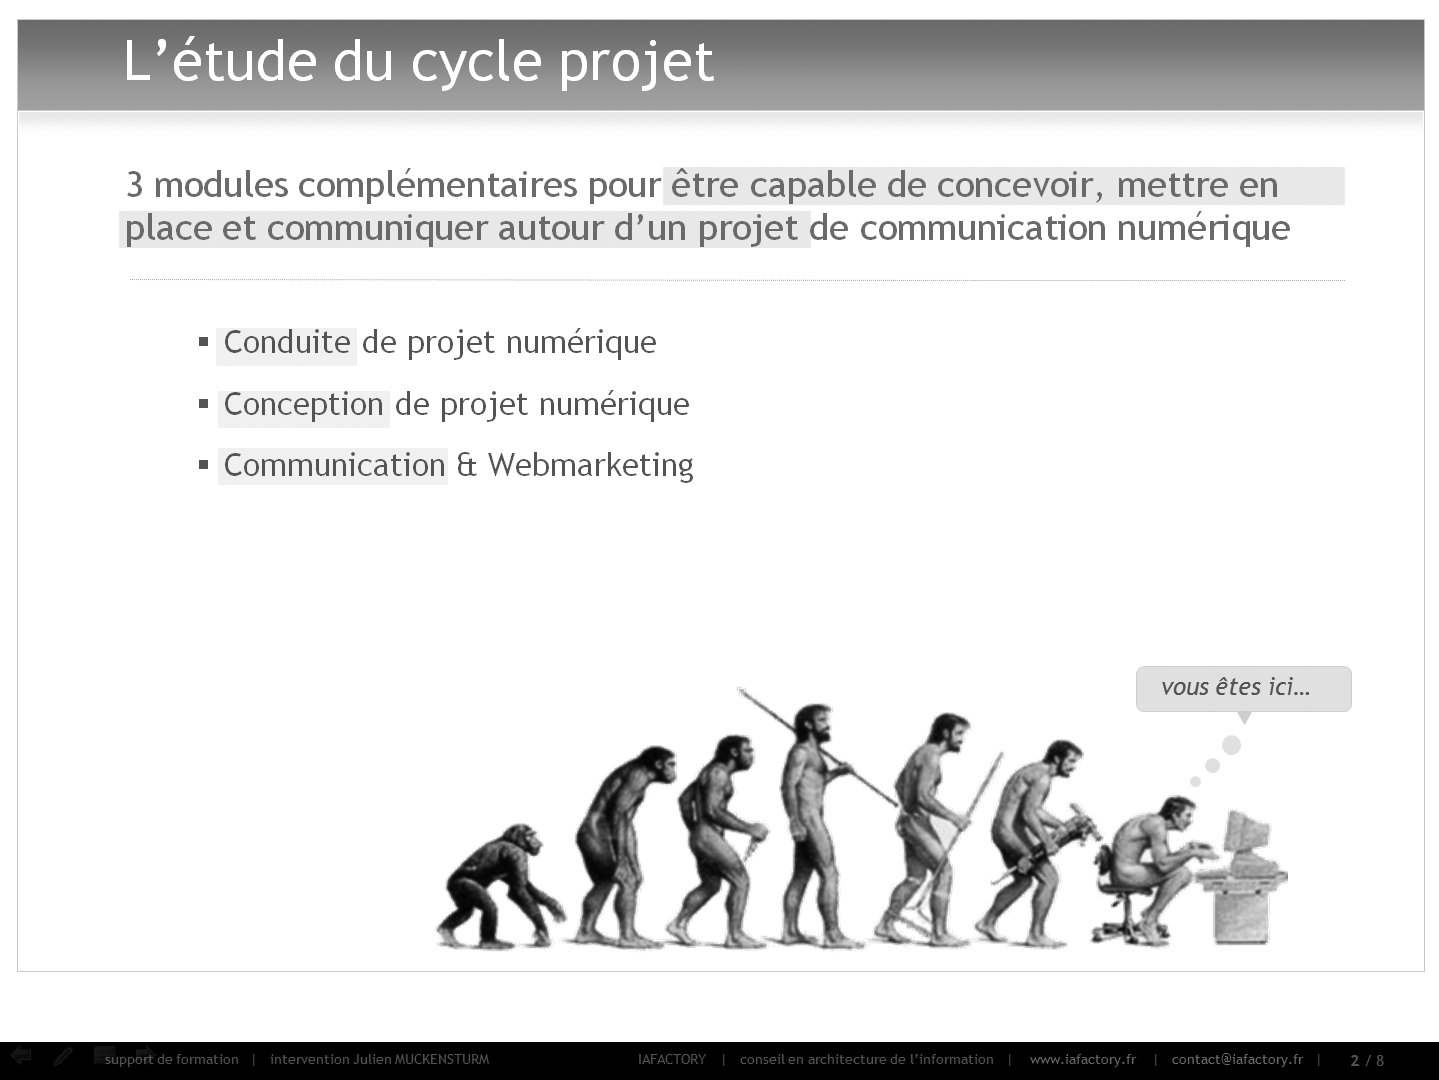 formation universitaire iafactory : le cycle projet